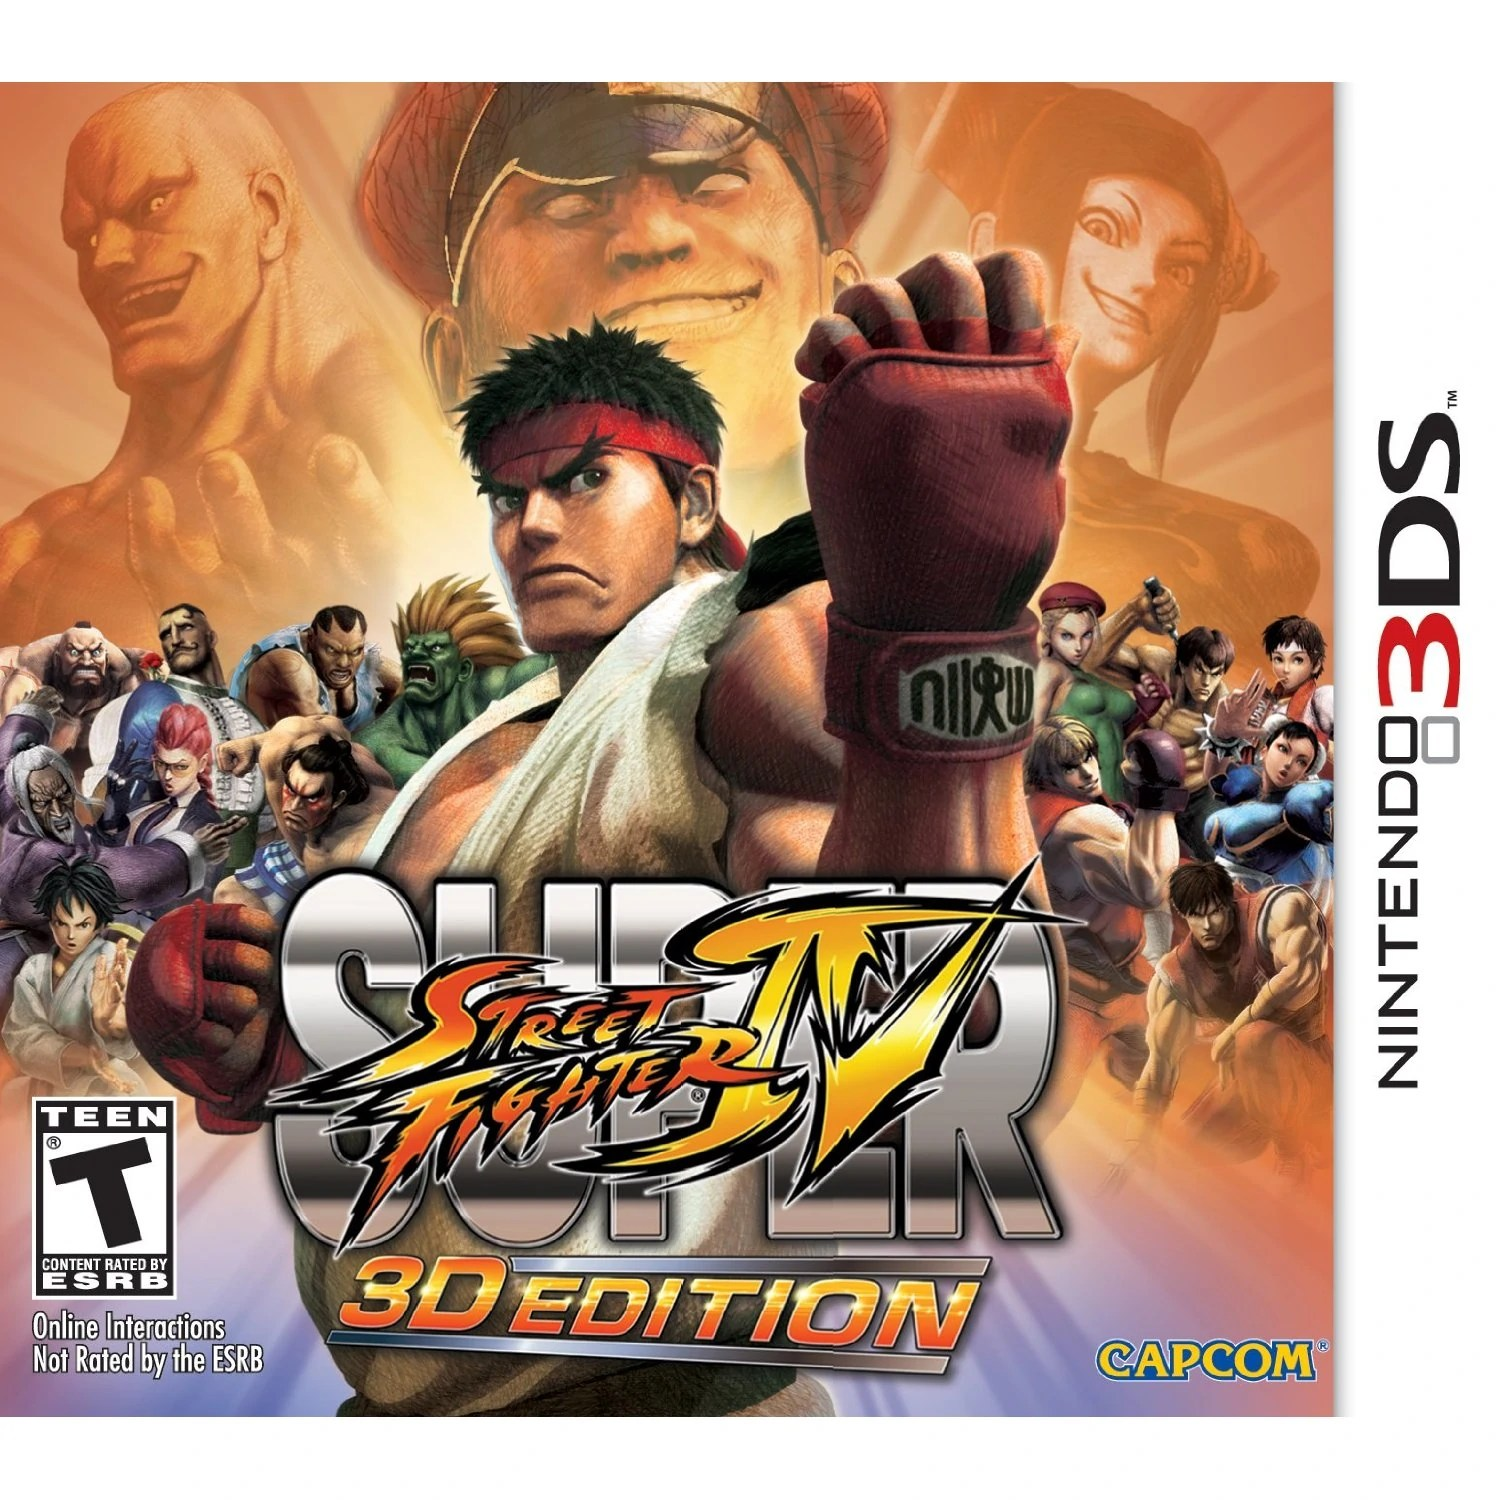 Donkey Vs Mario Ds Super Street Fighter Iv 3d Edition Nintendo 3ds Wiki